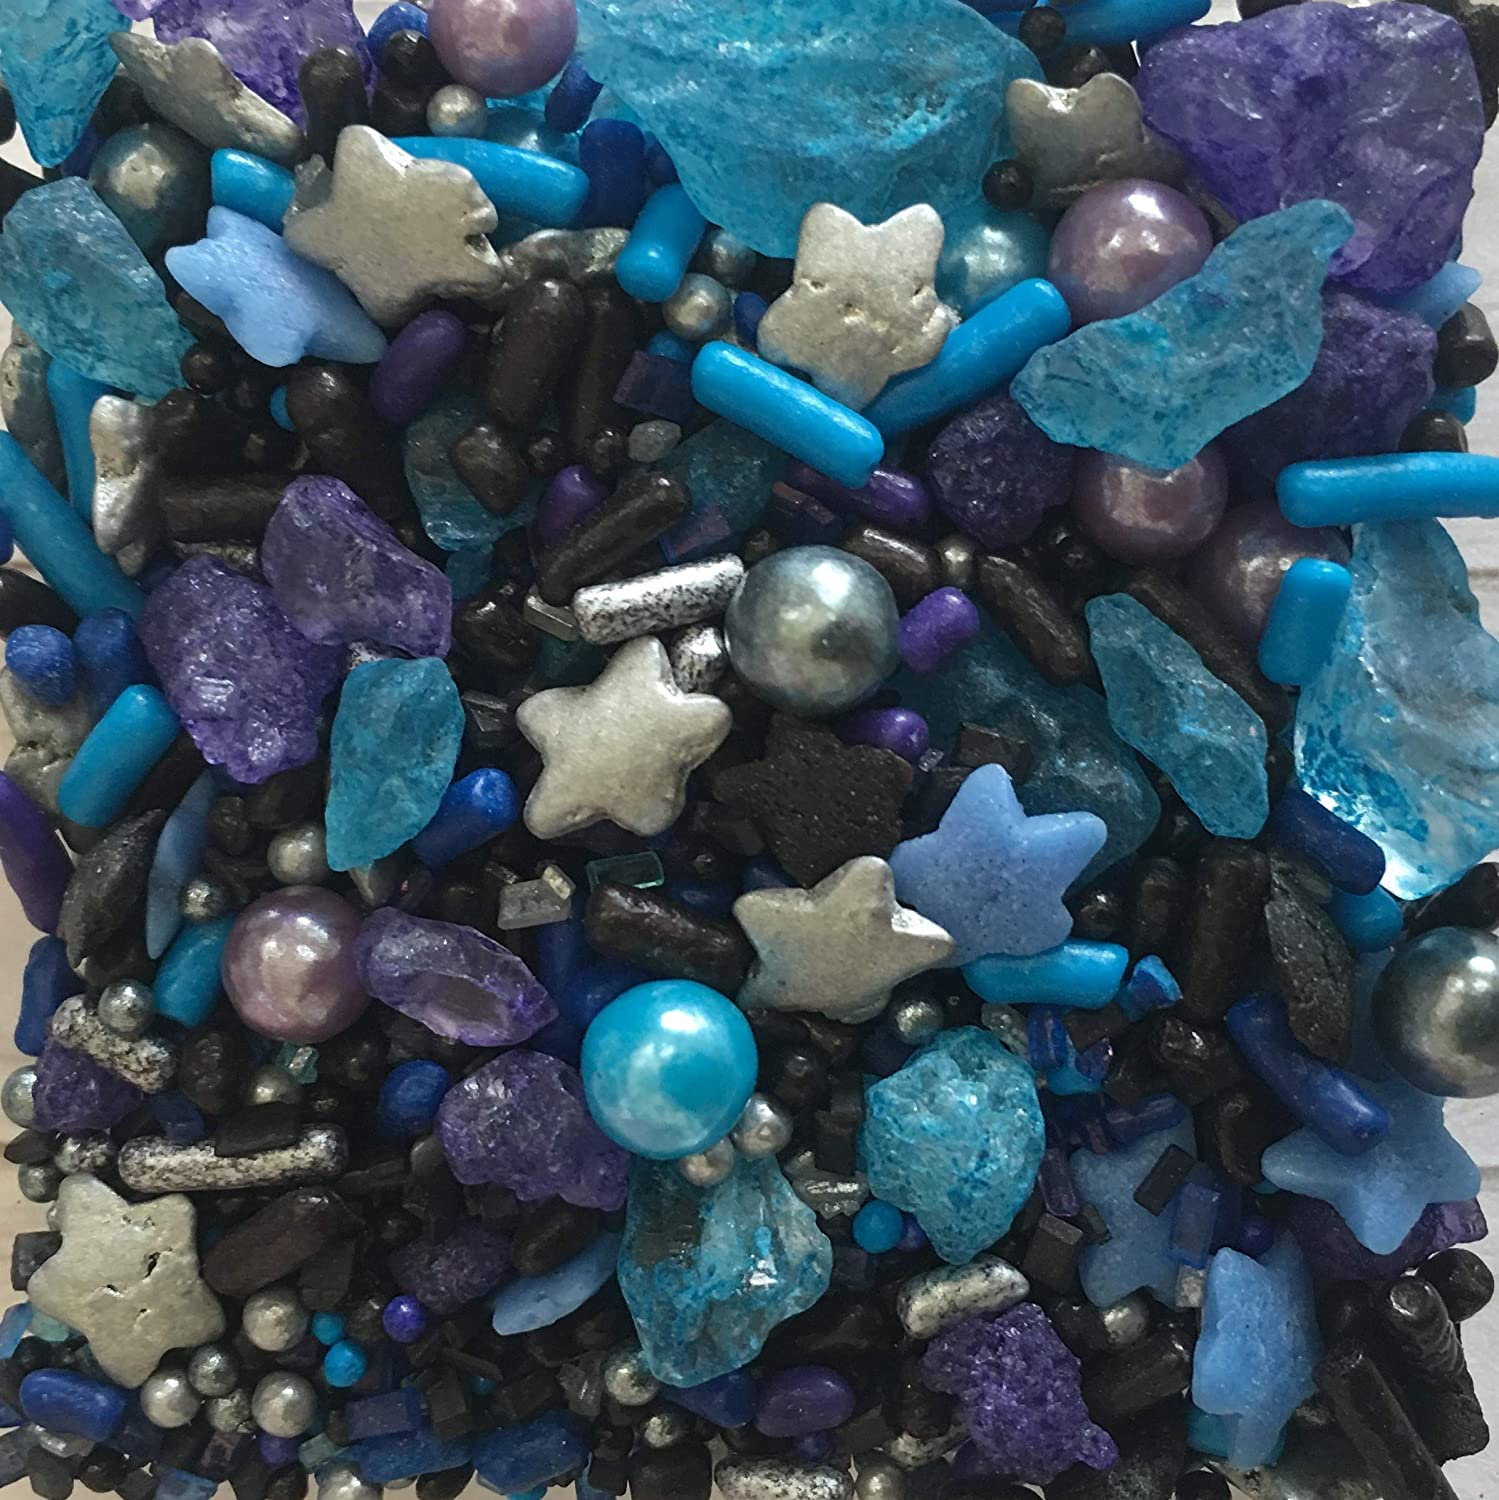 Galaxy Sprinkles for Baking and Decorating Cupcake, Cakes, Cookies, and Ice Cream! Bulk Medley Mix for Birthday Party I Edible Star Shaped Candy Decorations I 8 oz I Black I Blue I Purple I White I